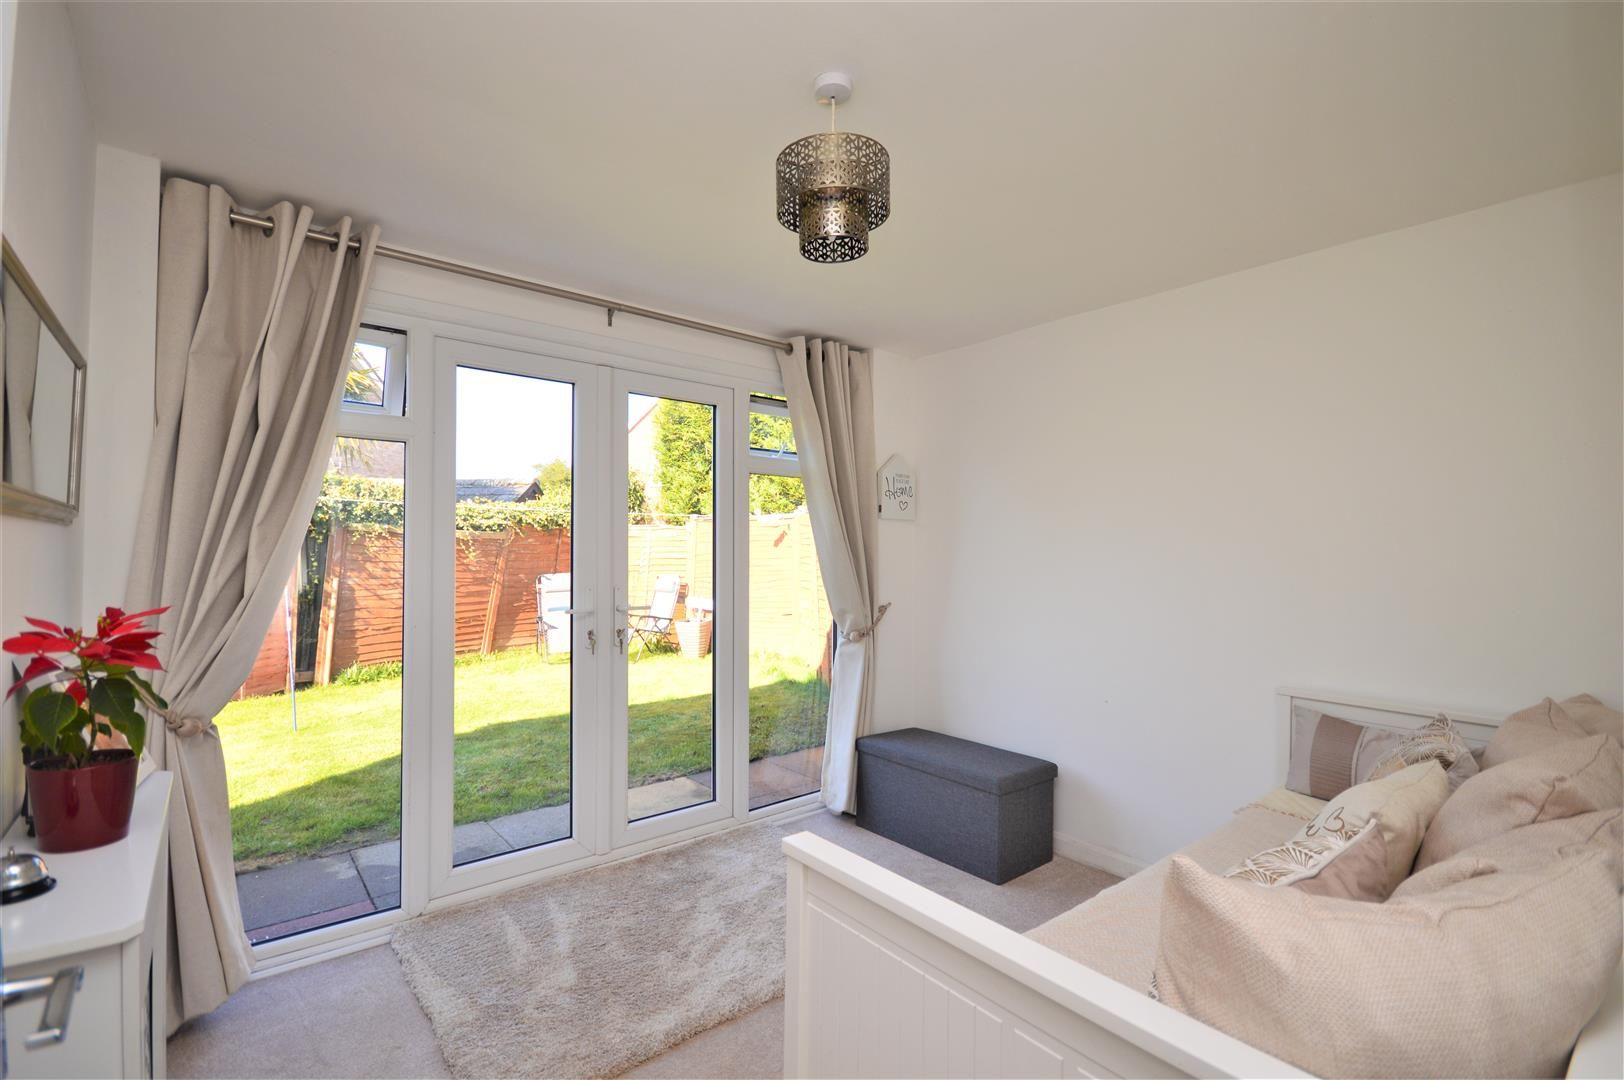 2 bed semi-detached-bungalow for sale in Marden 5